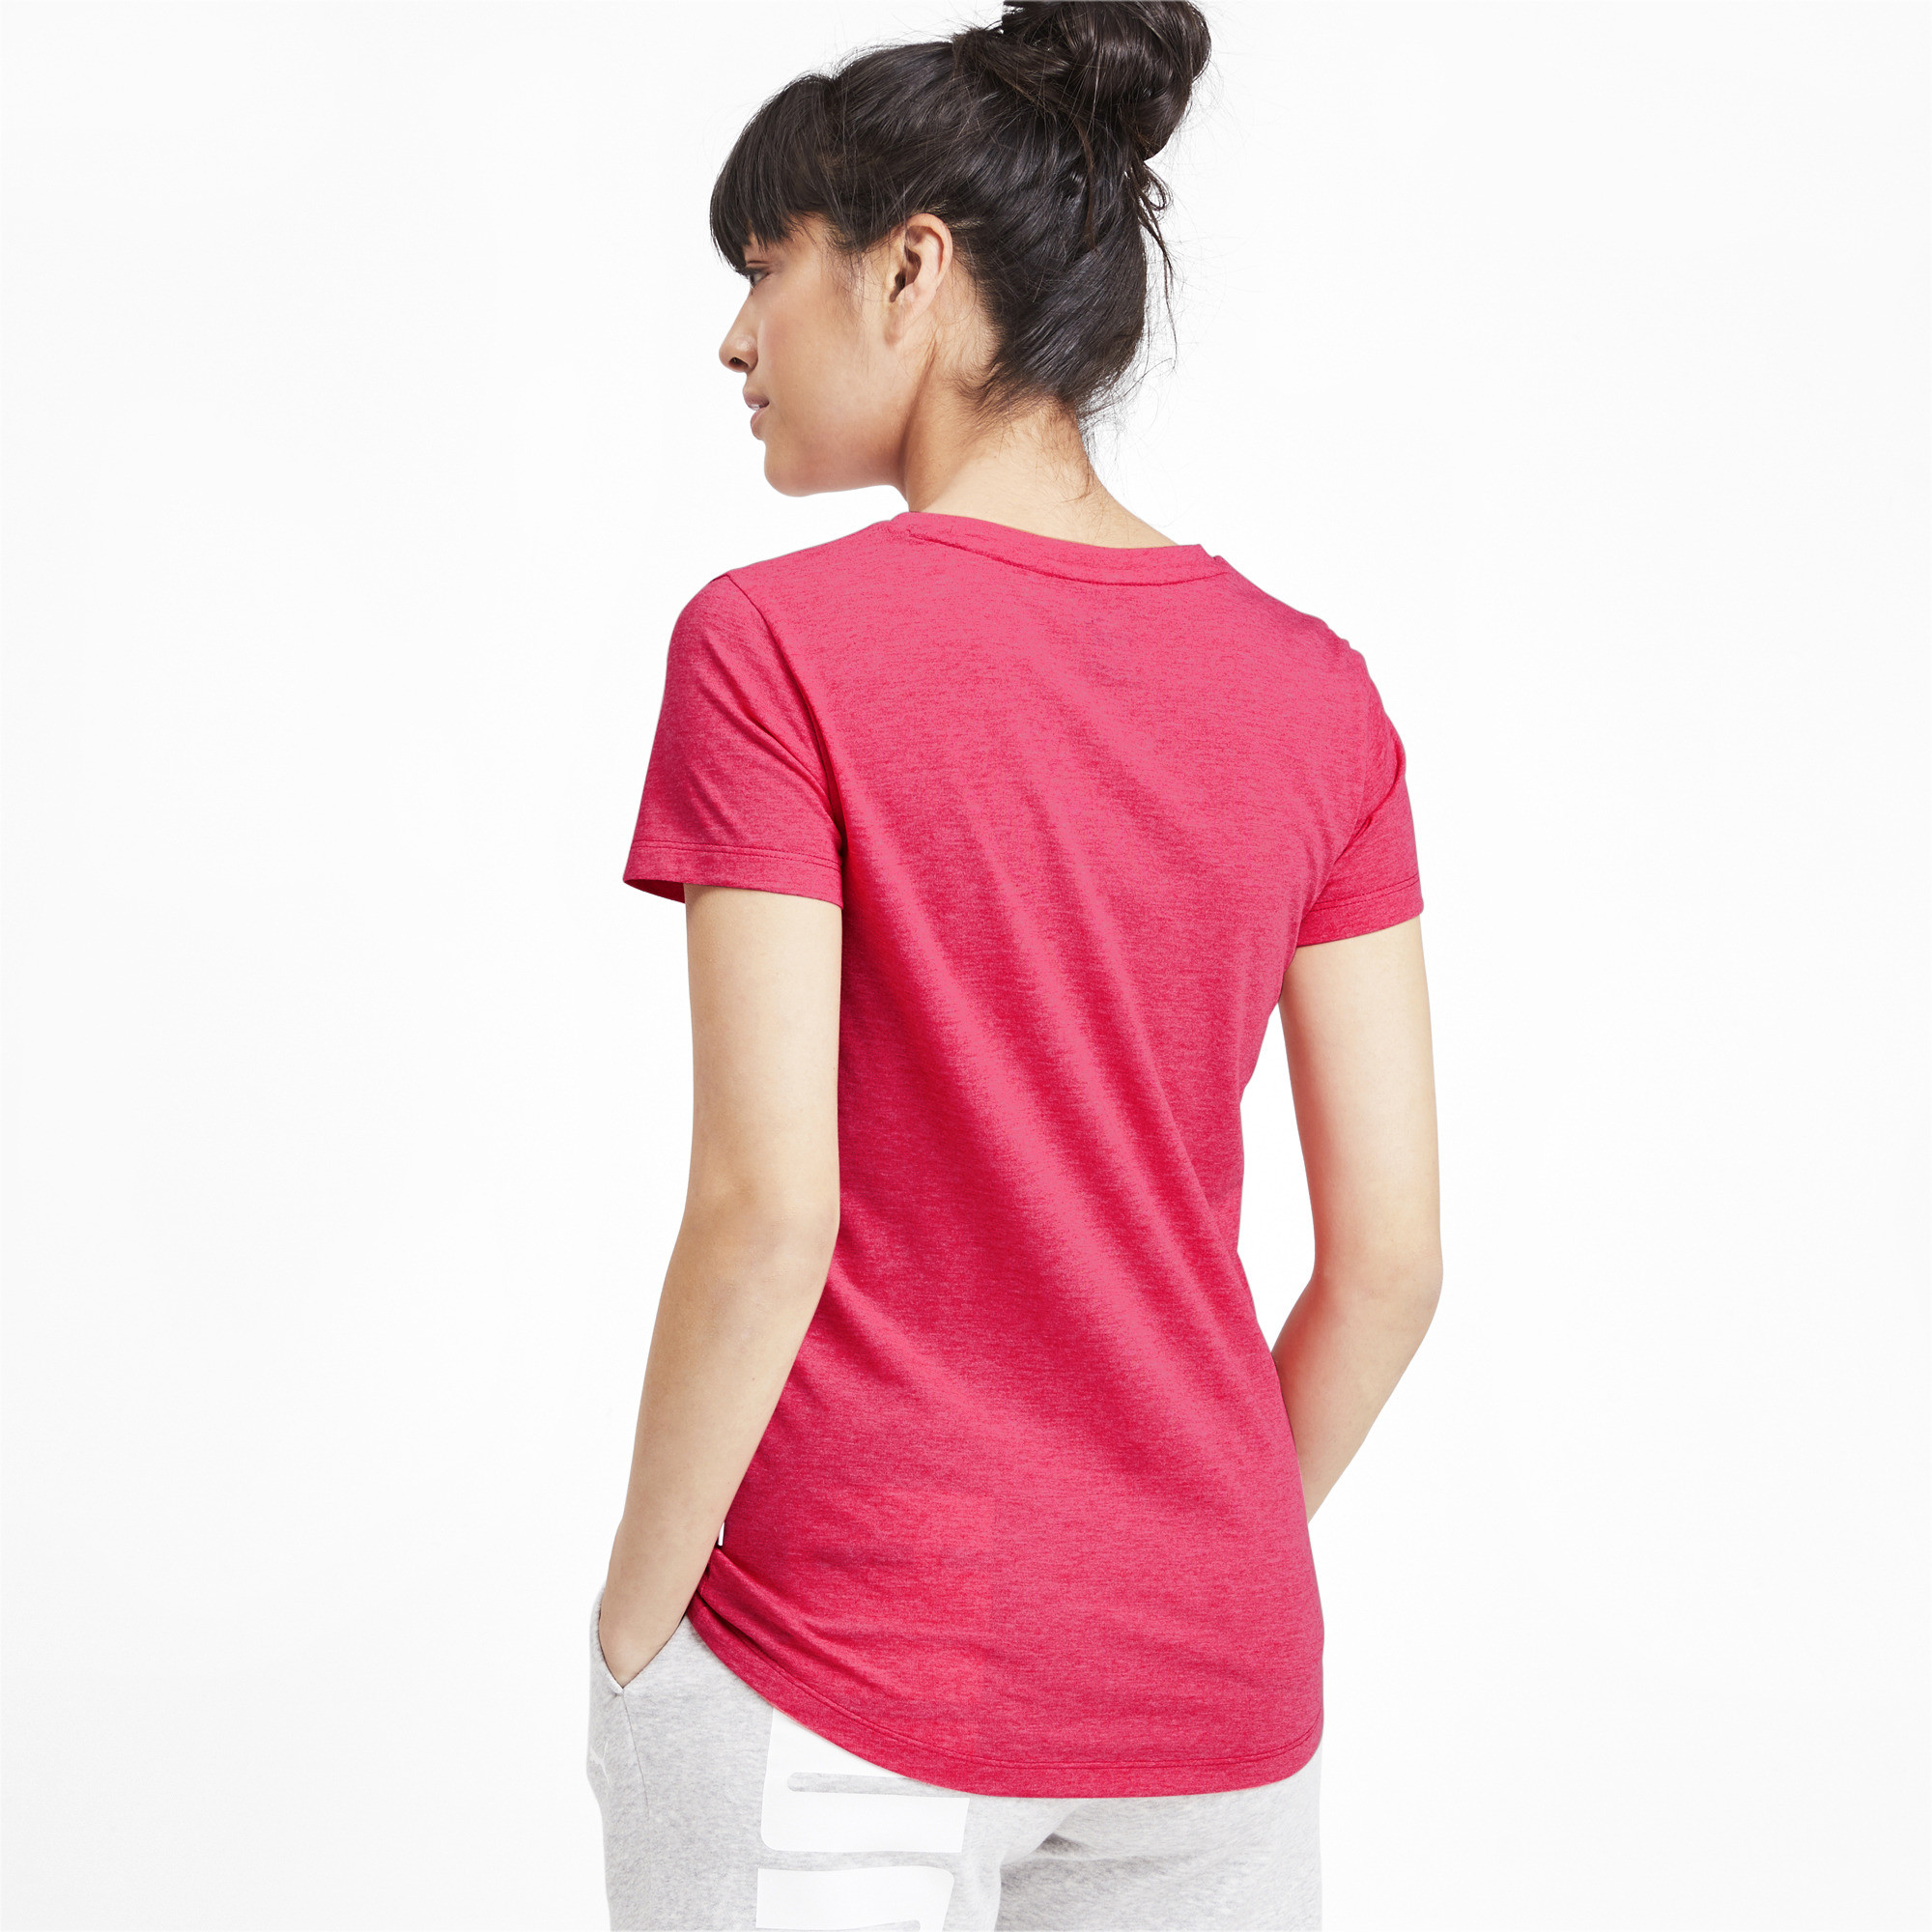 PUMA-Essentials-Women-039-s-Heather-Tee-Women-Tee-Basics thumbnail 30